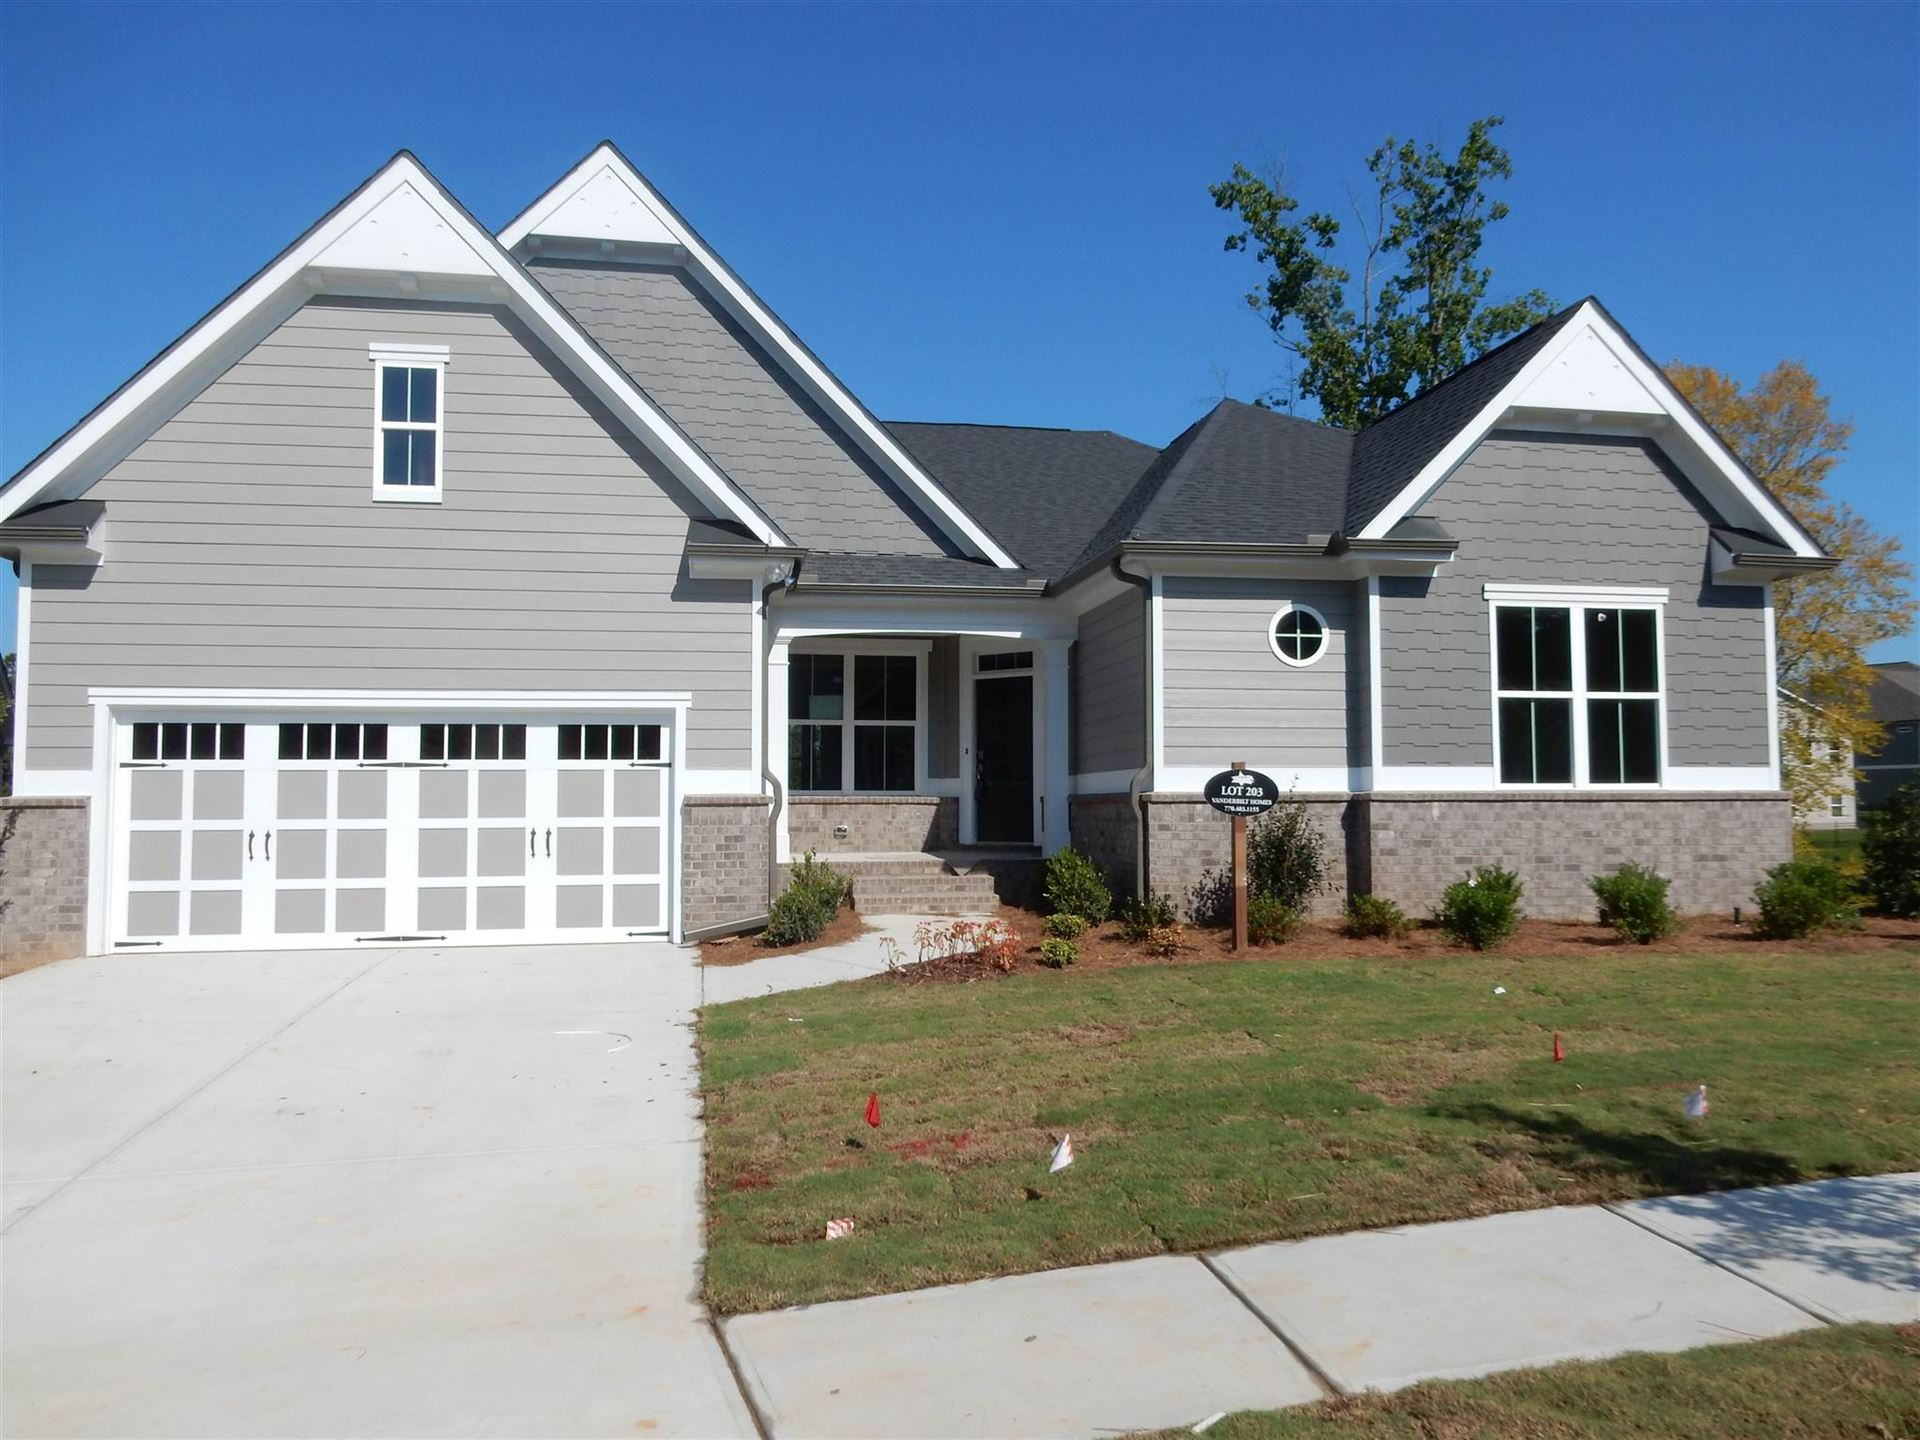 7270 Red Maple Ct, Flowery Branch, GA 30542 - MLS#: 8816431